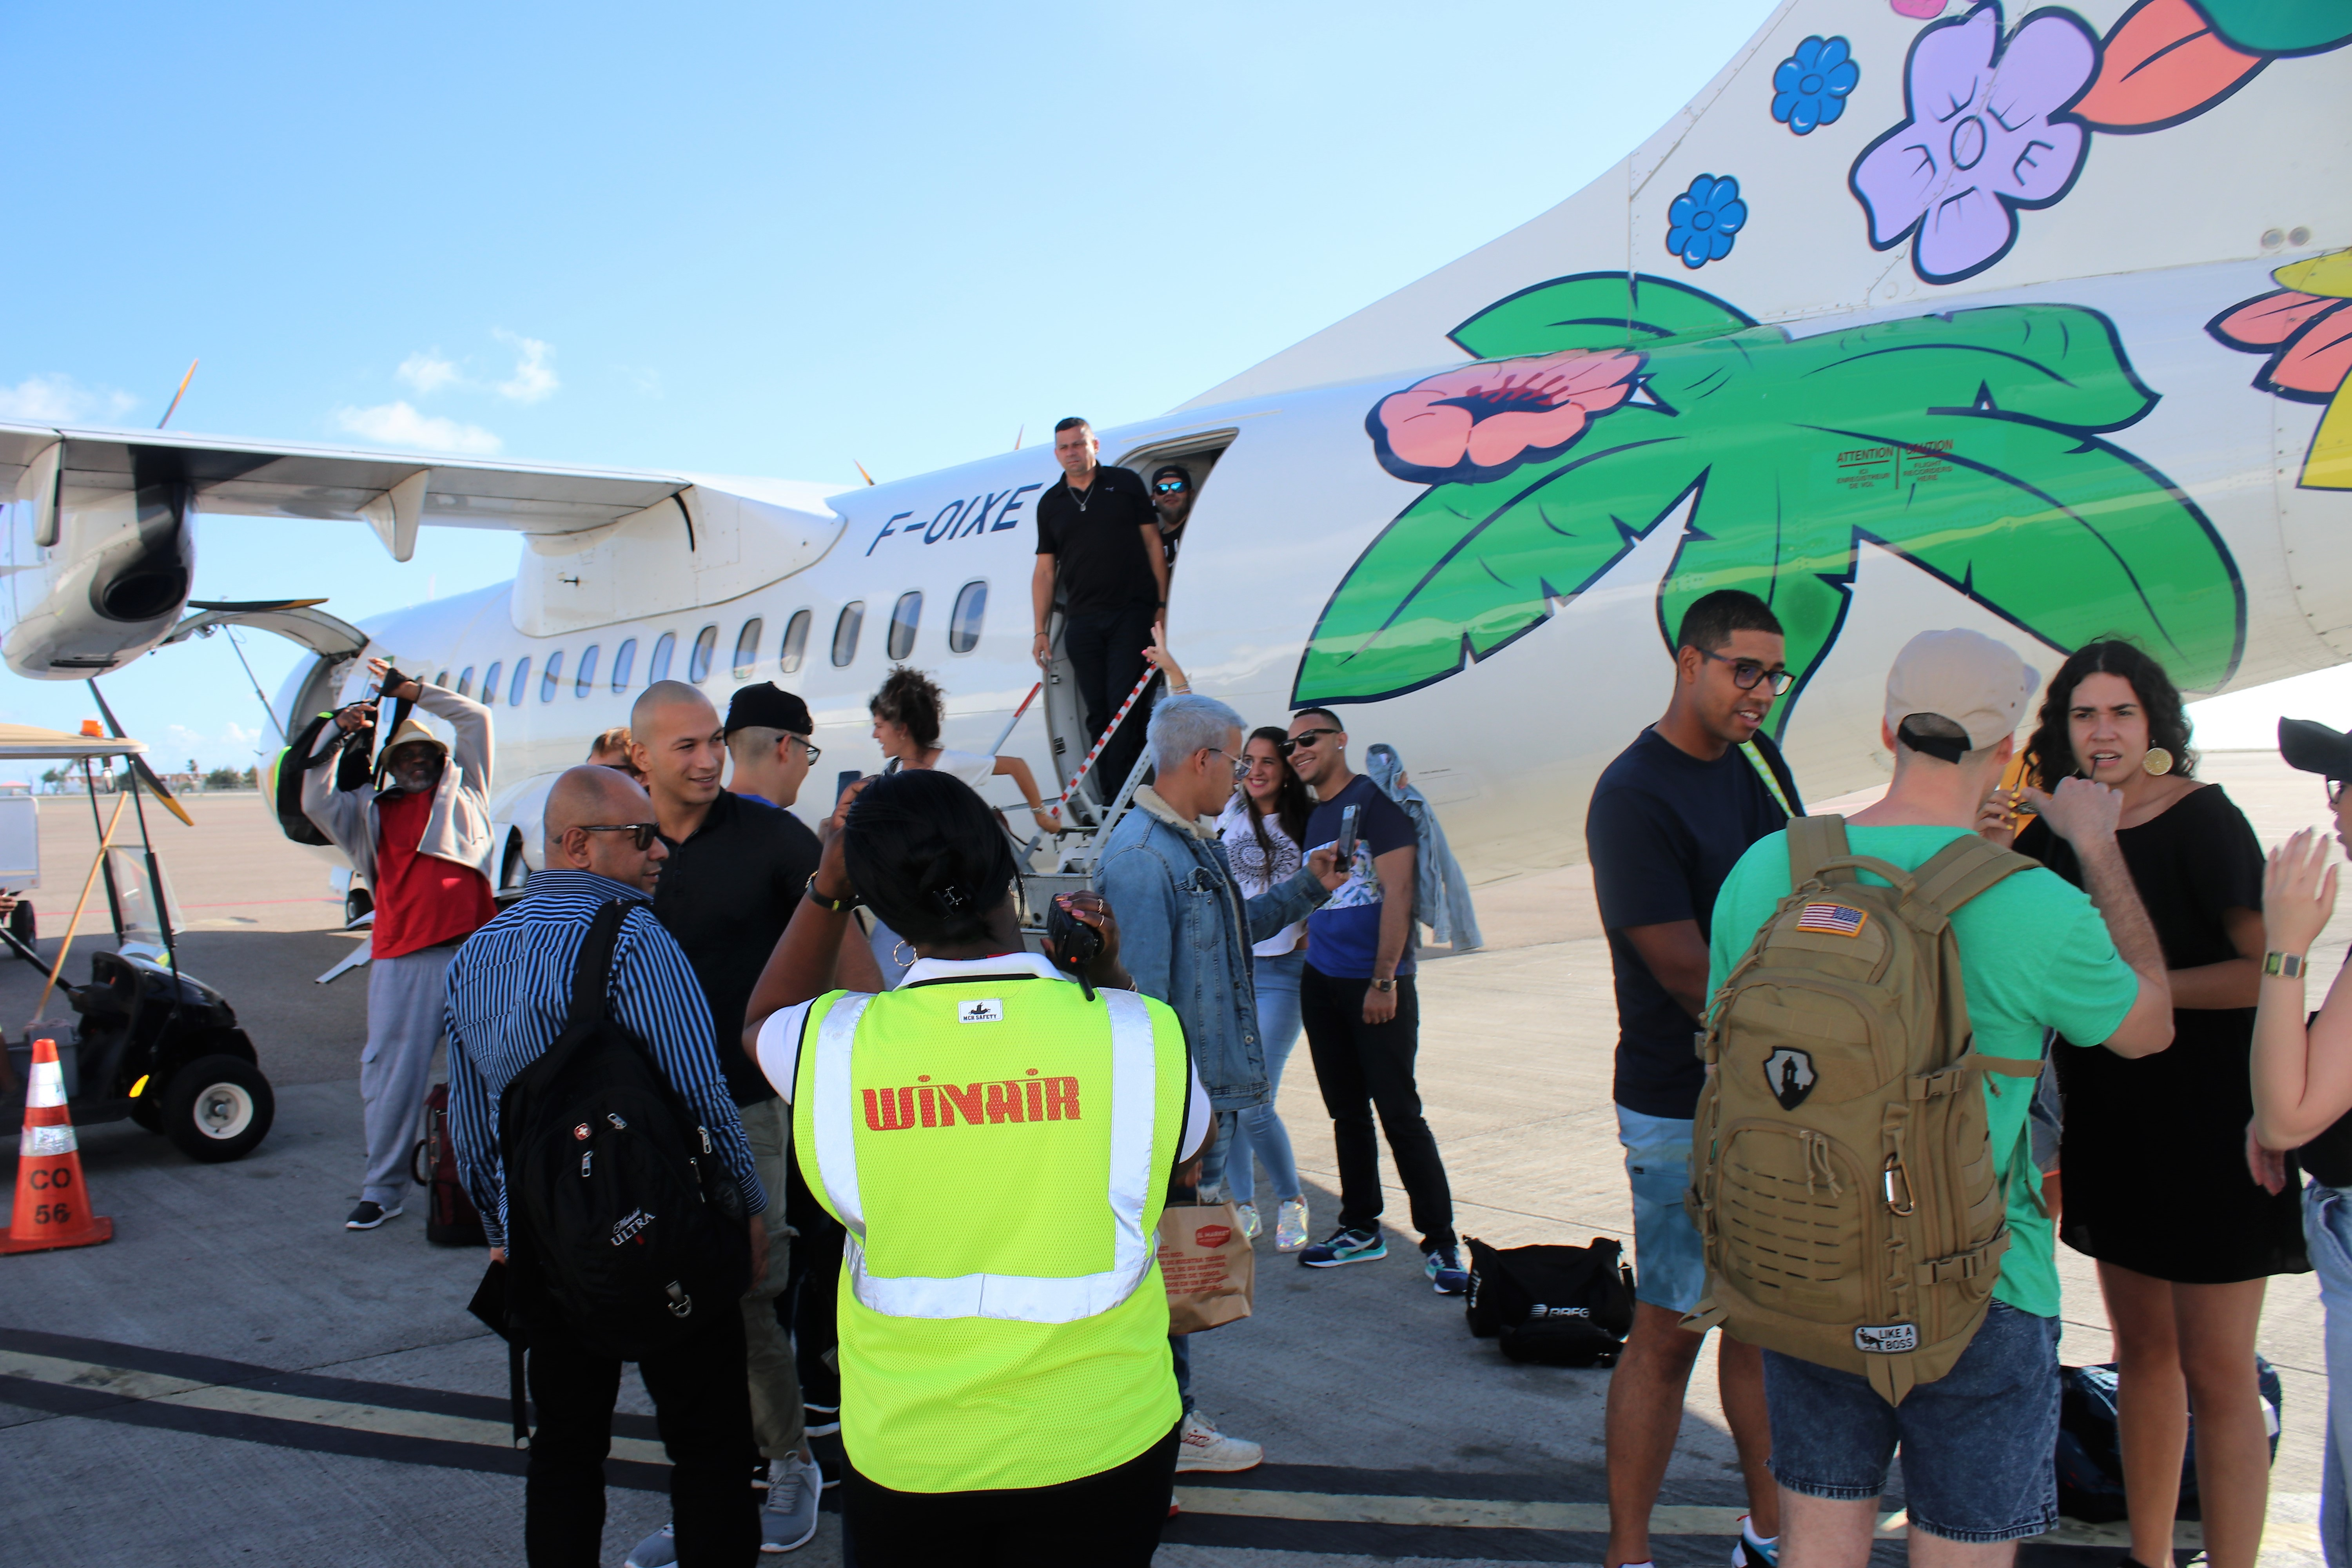 Visitors SXM Festival 2019 airport arrival 13032019